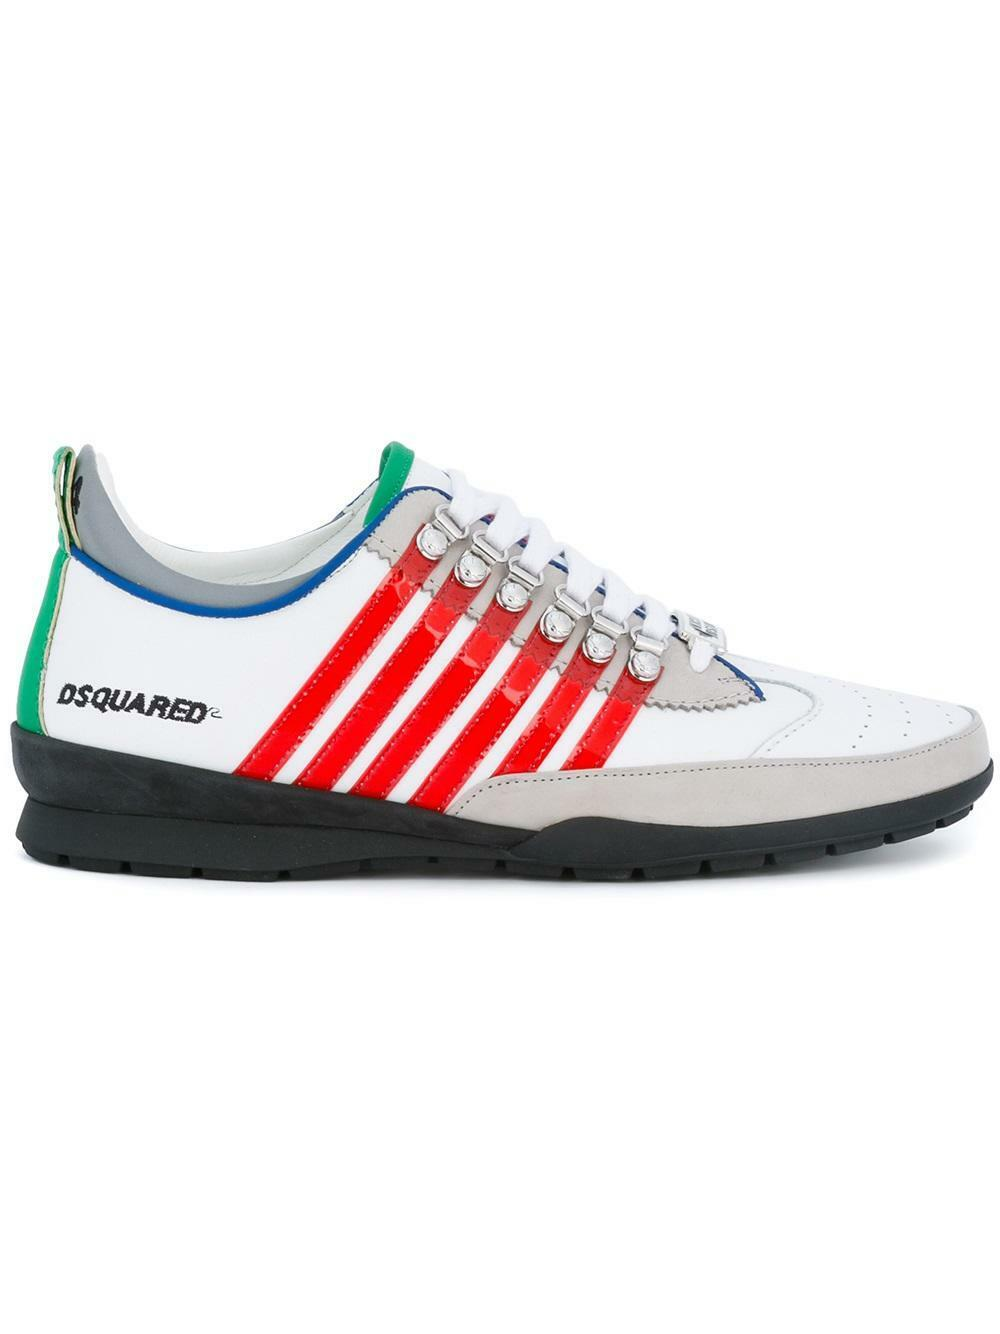 DSQUARED² SNEAKERS 251 Men'S Shoes Herrenschuhe chaussures homme 100%AUT